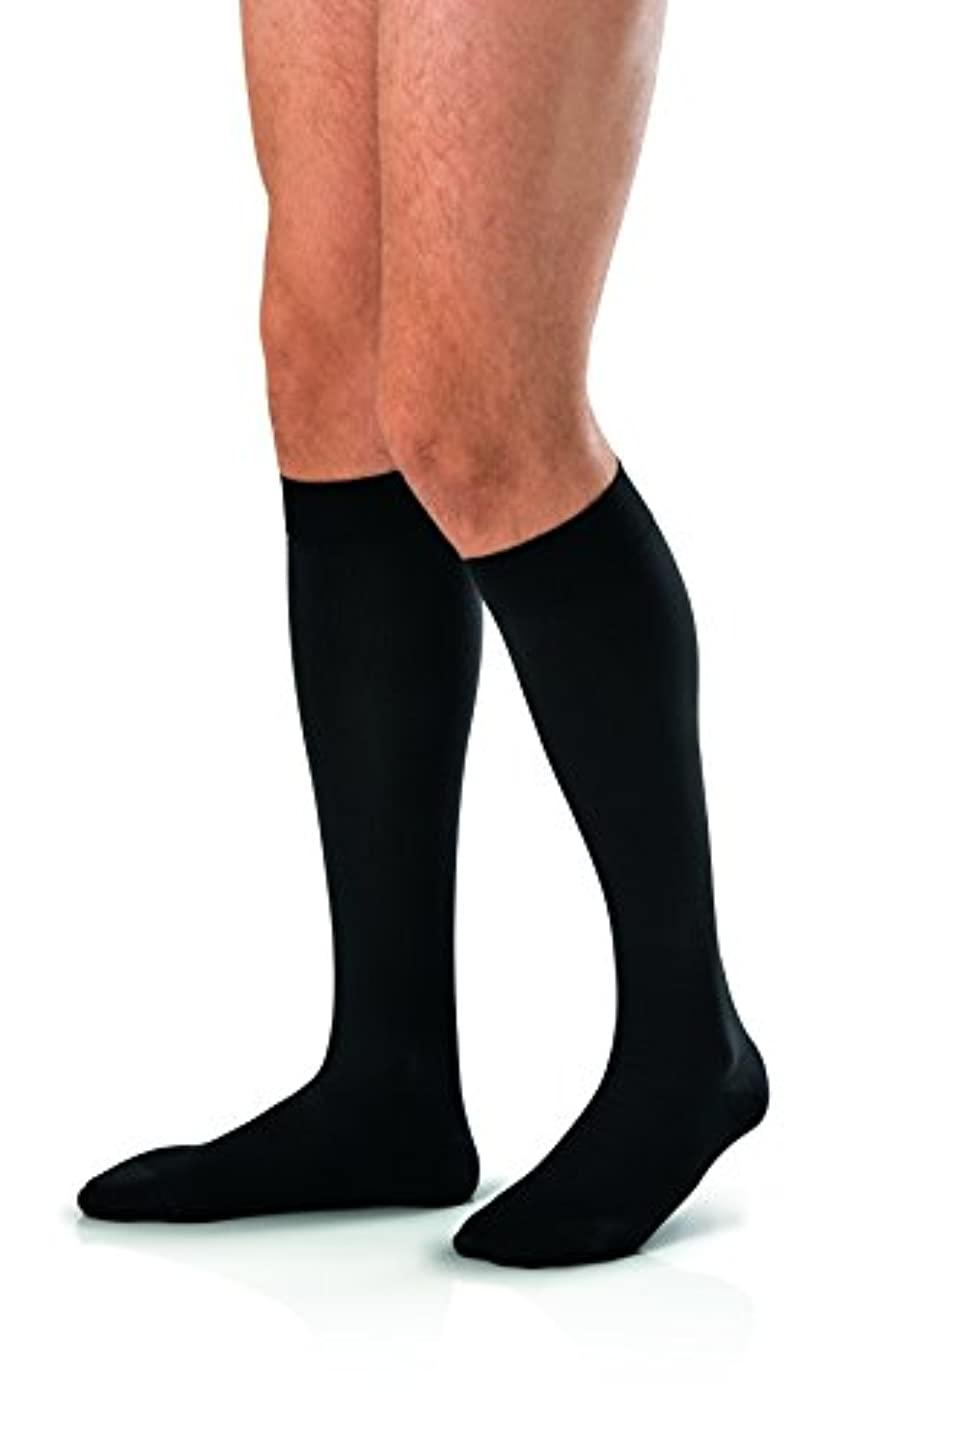 非常に怒っています安全でない重要なMen's 30-40 mmHg Closed Toe Knee High Support Sock Size: X-Large, Color: Black by Jobst [並行輸入品]